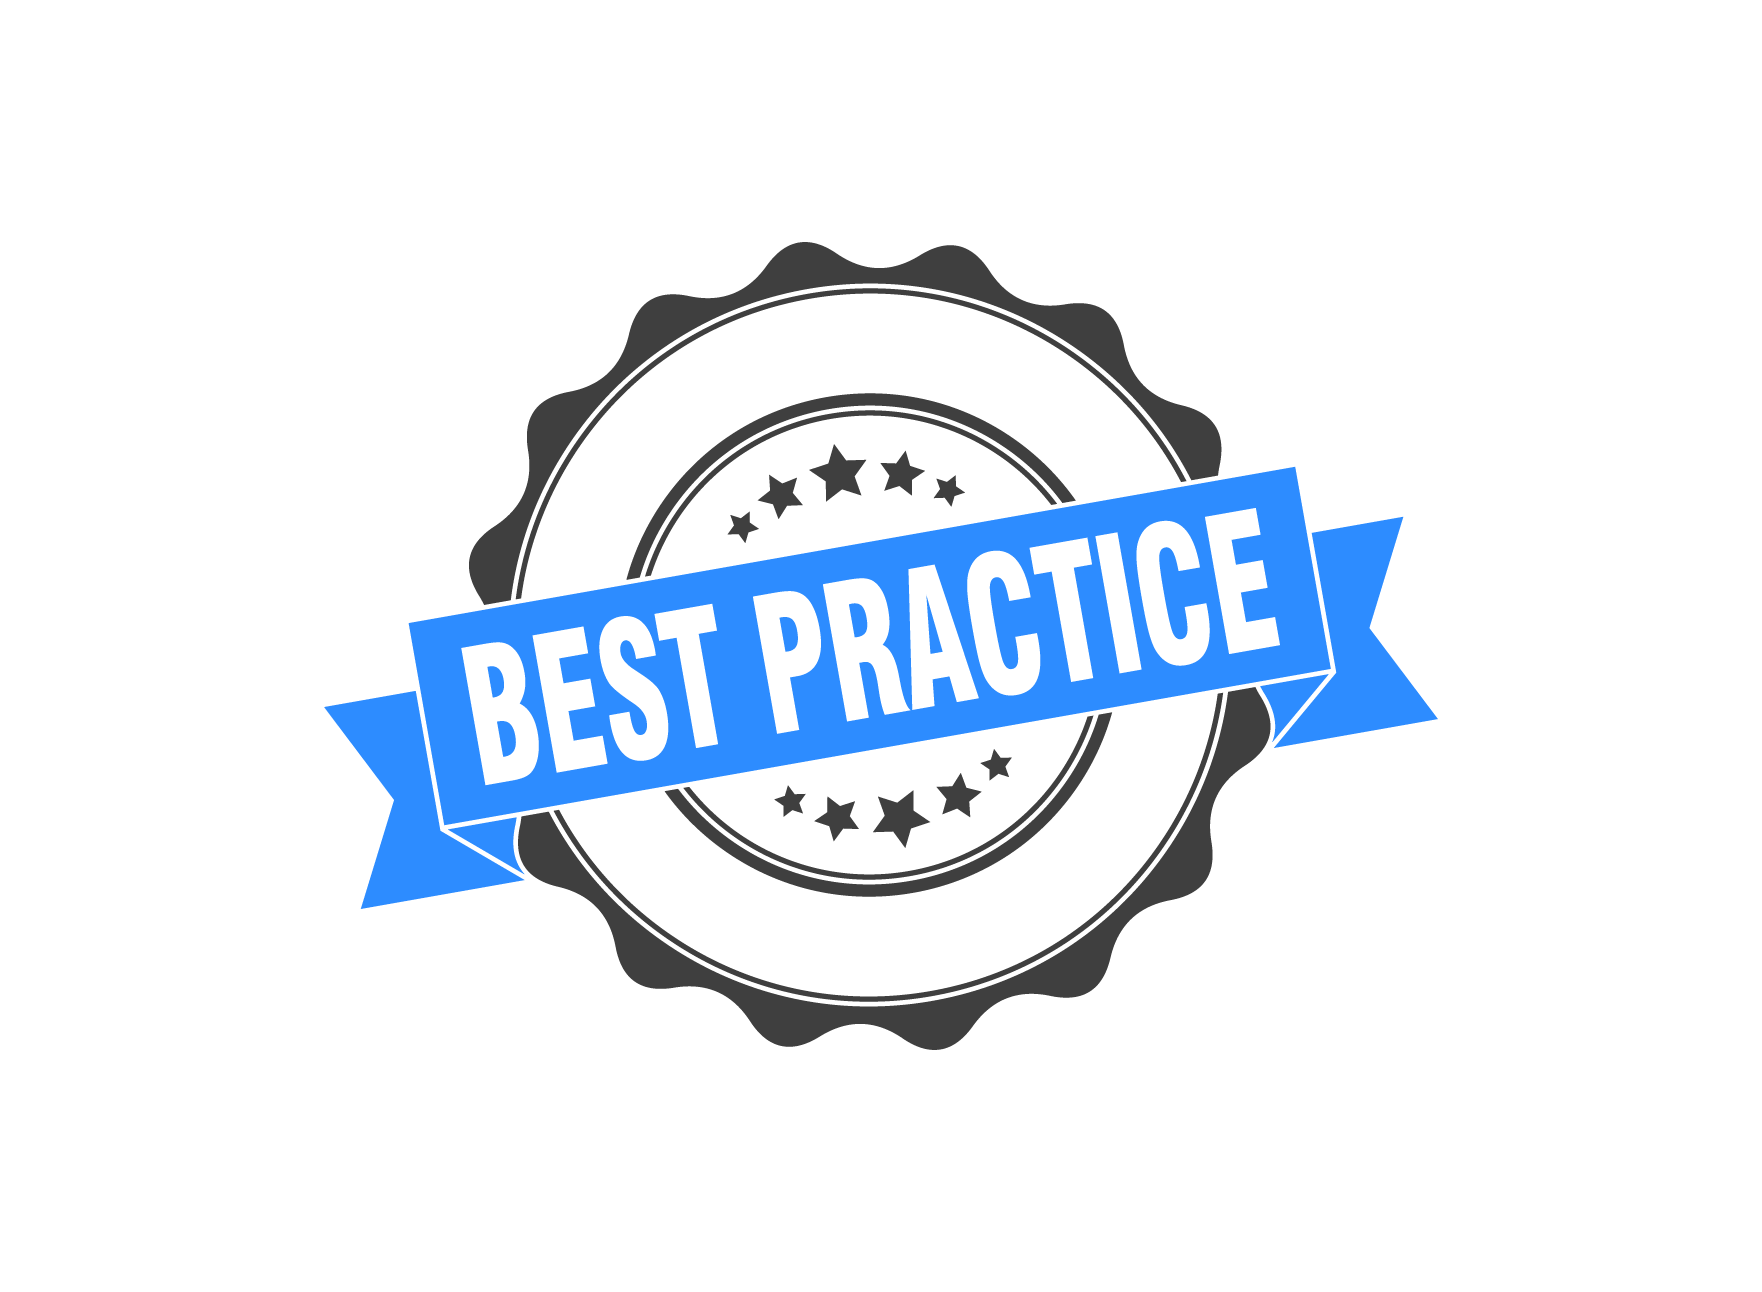 Video Communications Best Practice Guide.